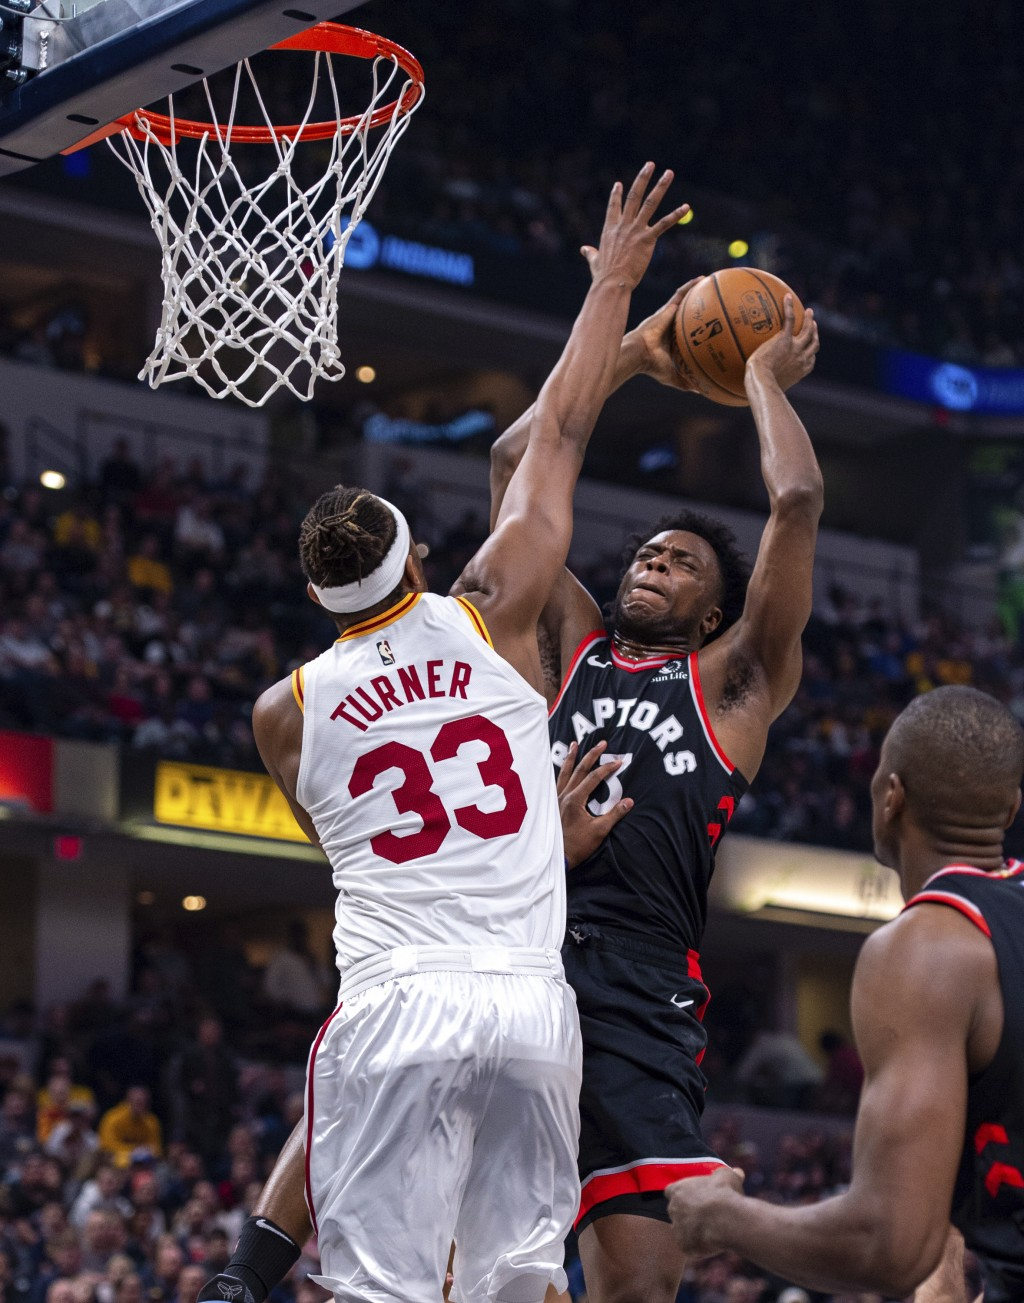 Indiana Pacers center Myles Turner (33) blocks the shot of Toronto Raptors forward OG Anunoby (3) during an NBA basketball game, Monday, Dec. 23, 2019...